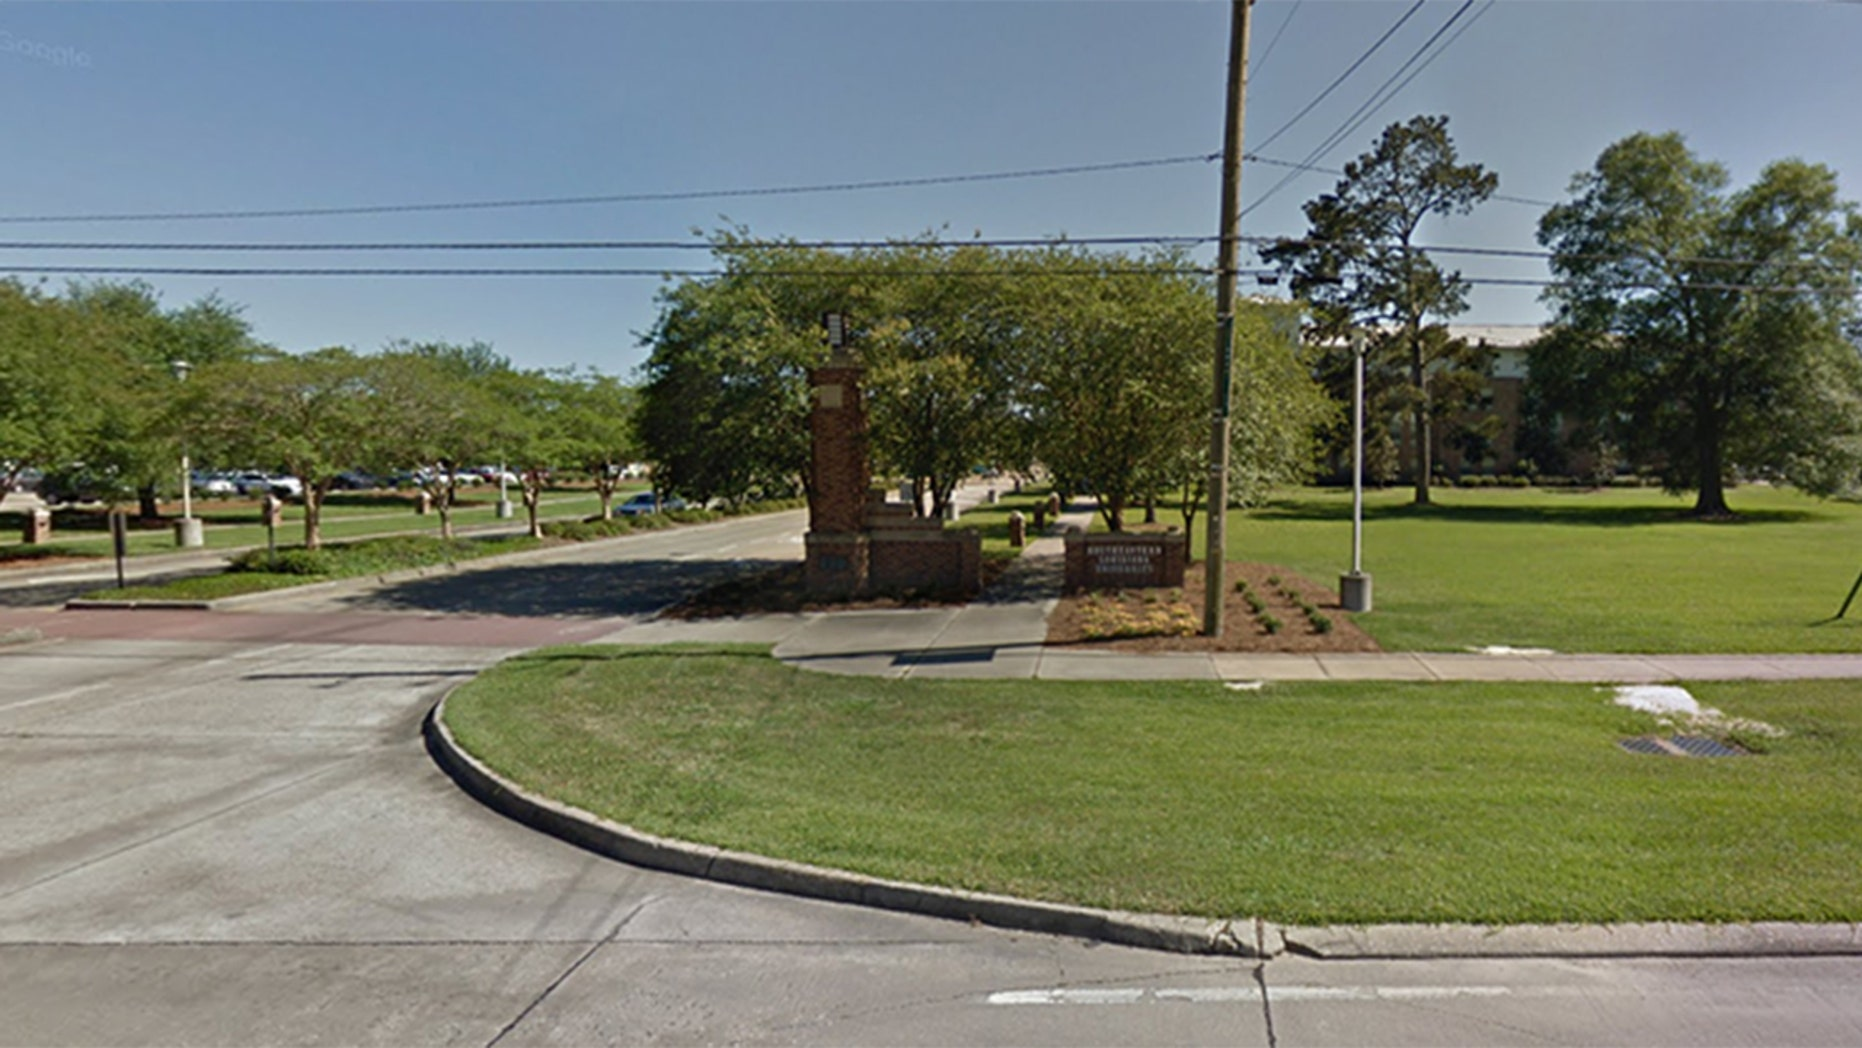 Two people were injured after gunshots were fired at the Southeastern Louisiana University campus.